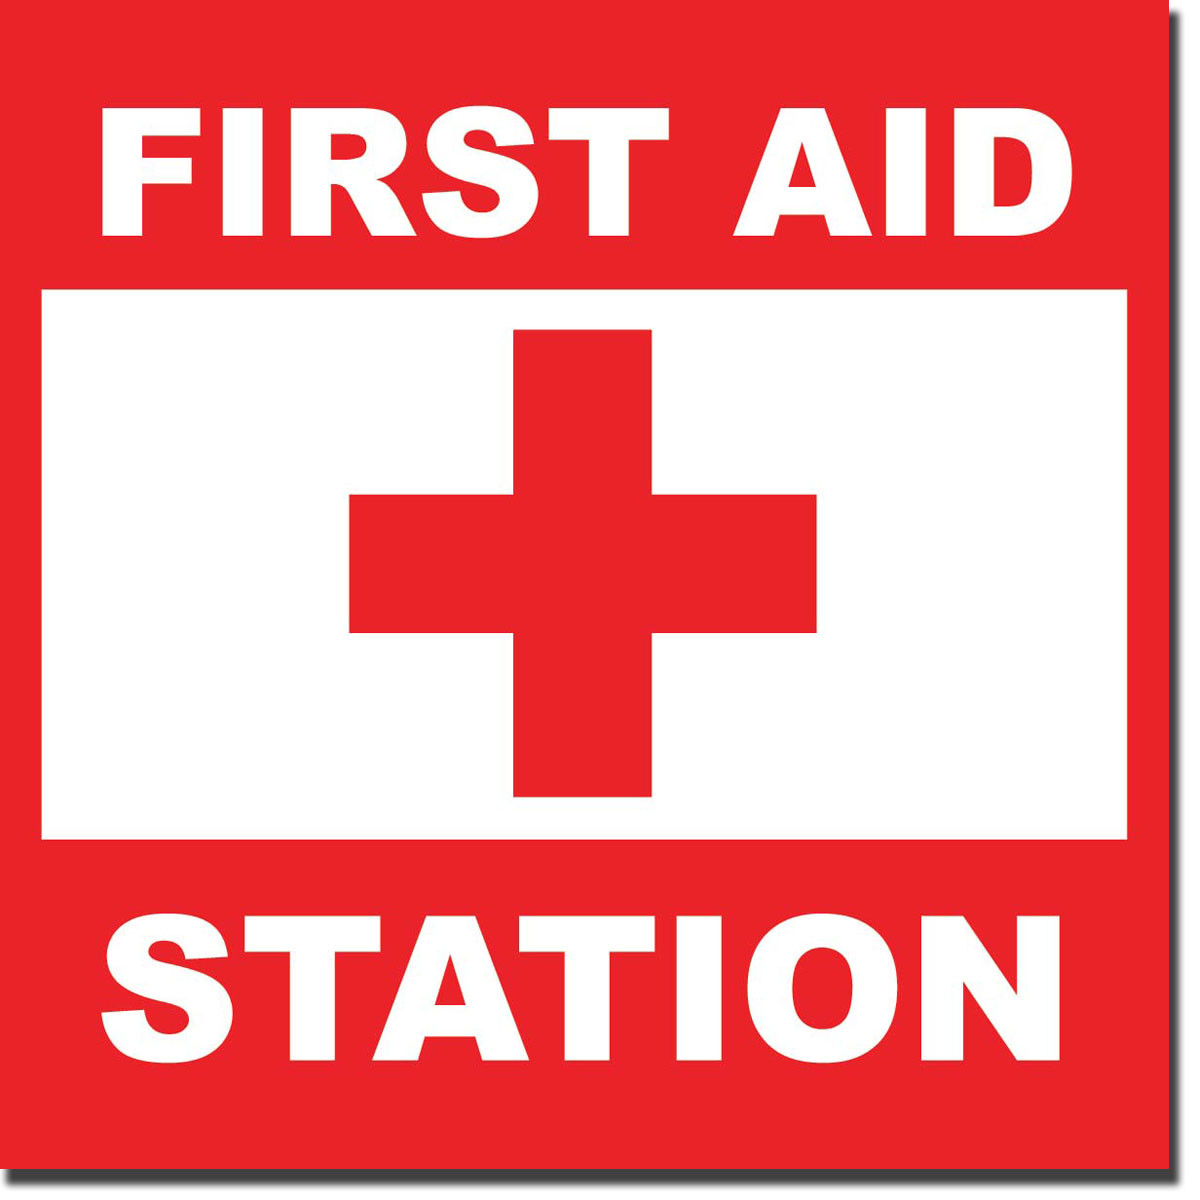 Epic image with printable first aid sign